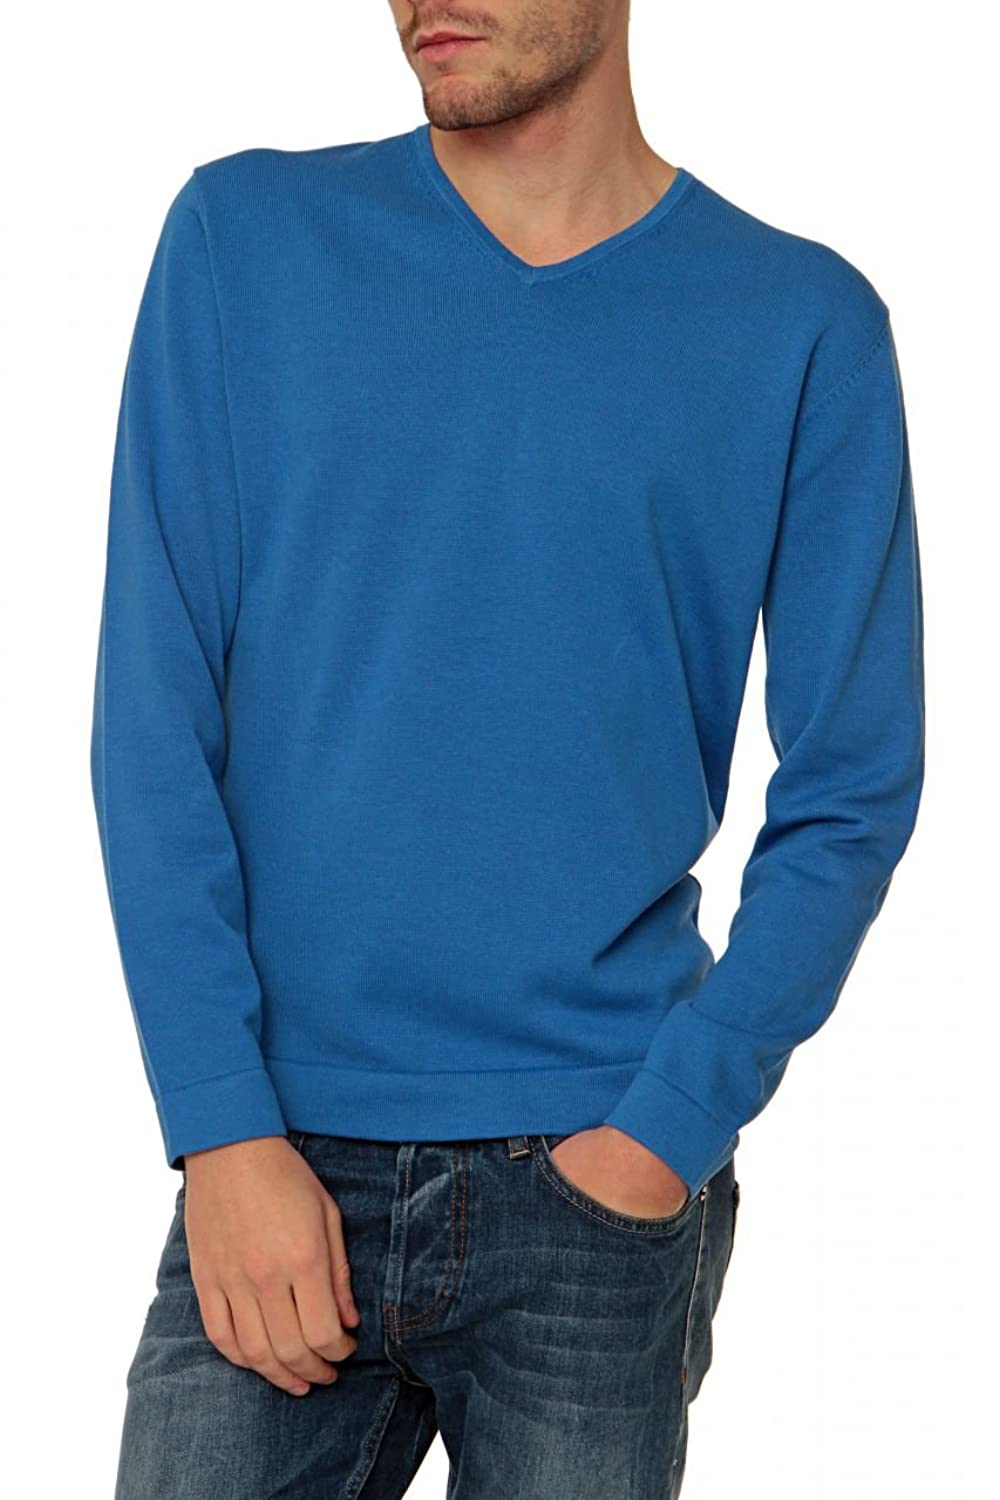 Colours&Sons V-Neck Pullover , Color: Blue